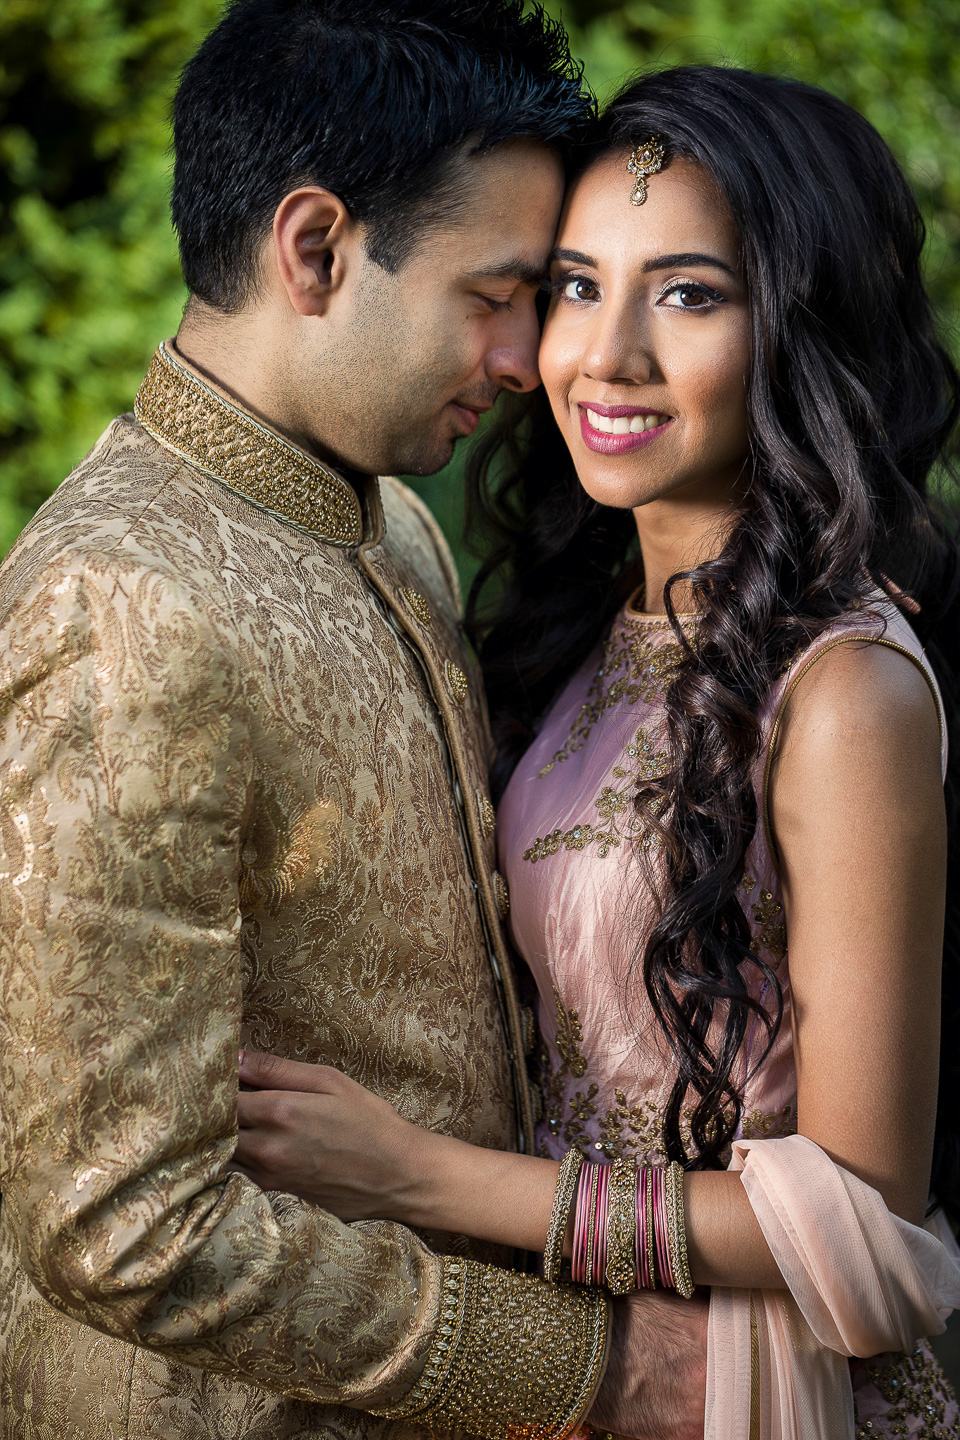 London Wedding Photographer Engagement Photoshoot London Indian Wedding -5.jpg